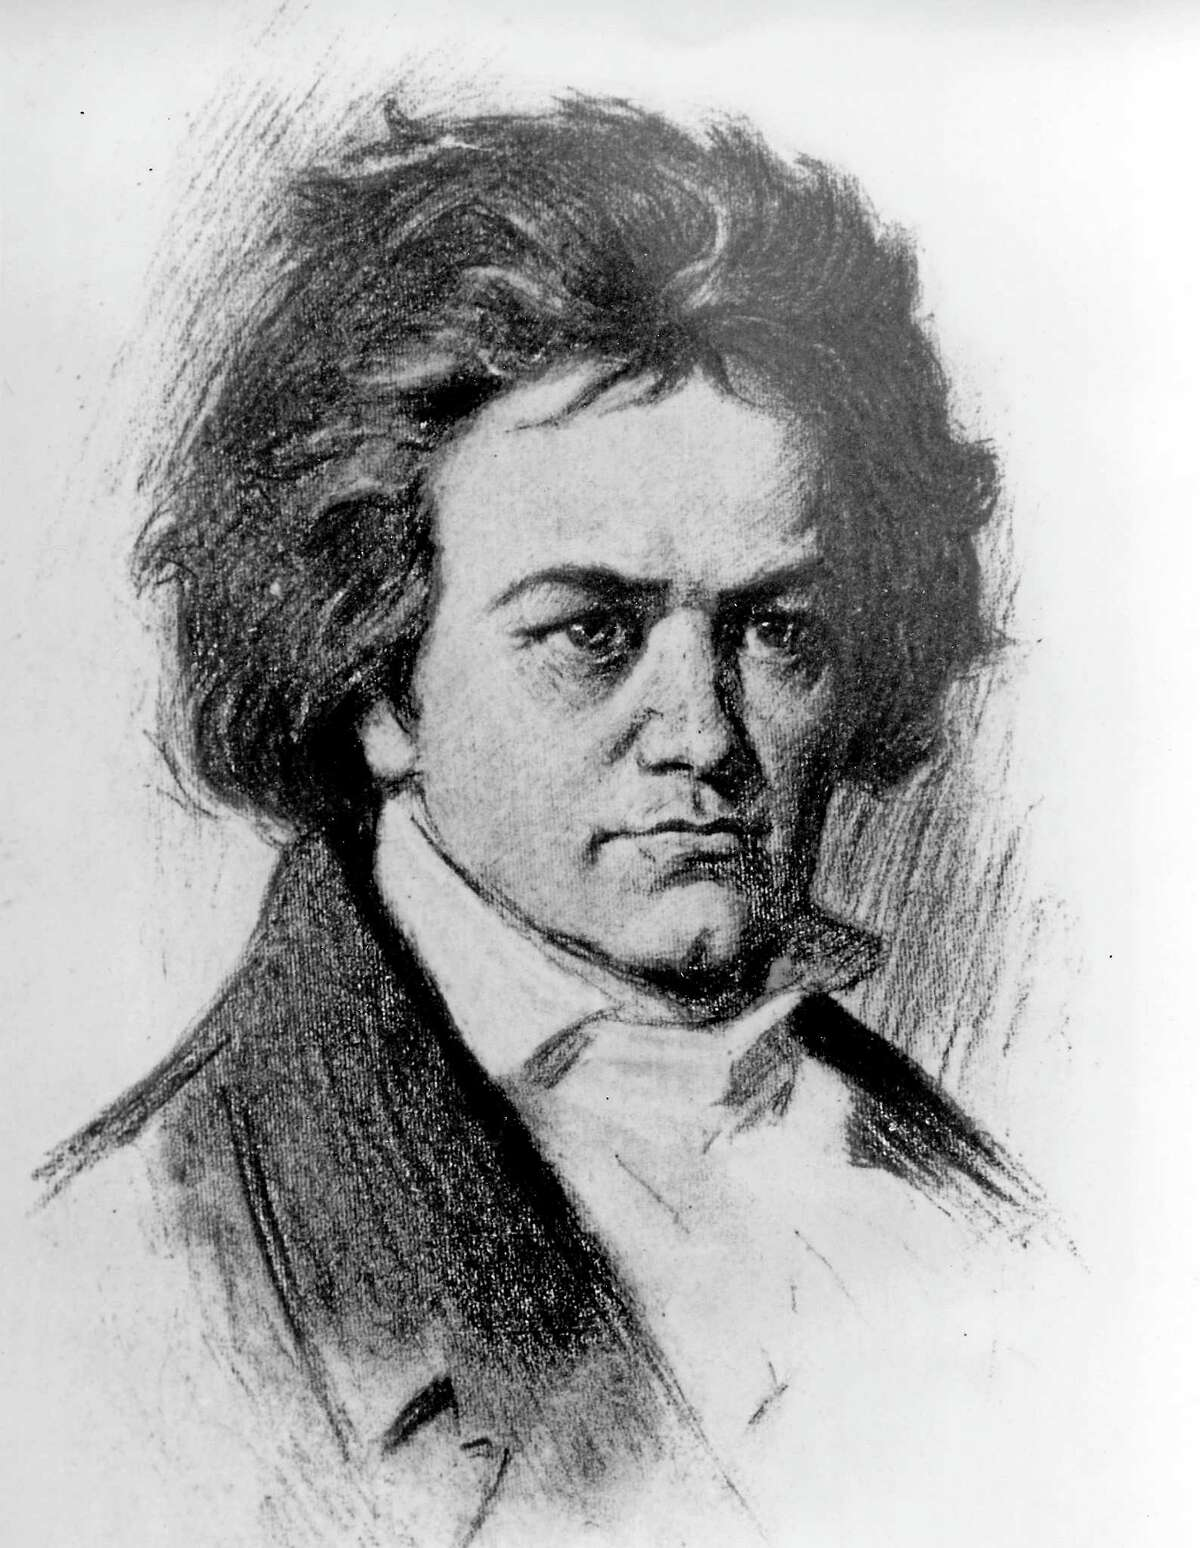 An undated sketch of German composer Ludwig van Beethoven. Beethoven was born in Bonn on Dec. 17, 1770 and died in Vienna on March 26, 1827.